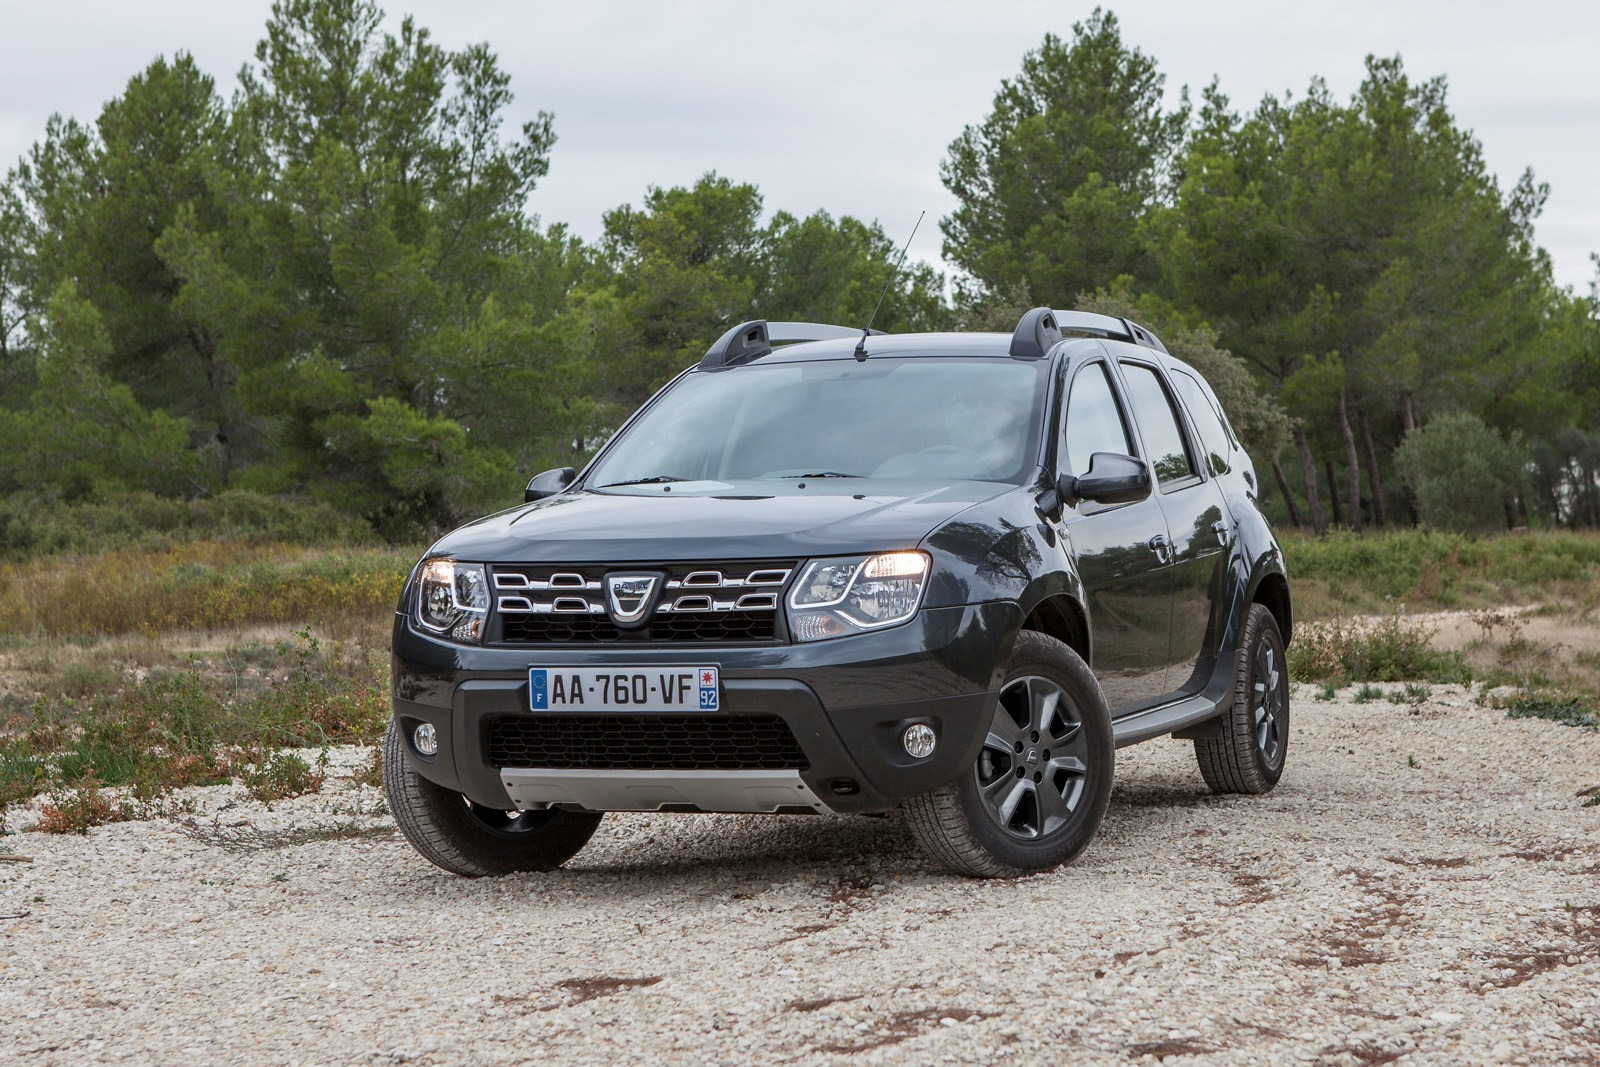 new dacia duster 1 2 tce detailed video autoevolution. Black Bedroom Furniture Sets. Home Design Ideas